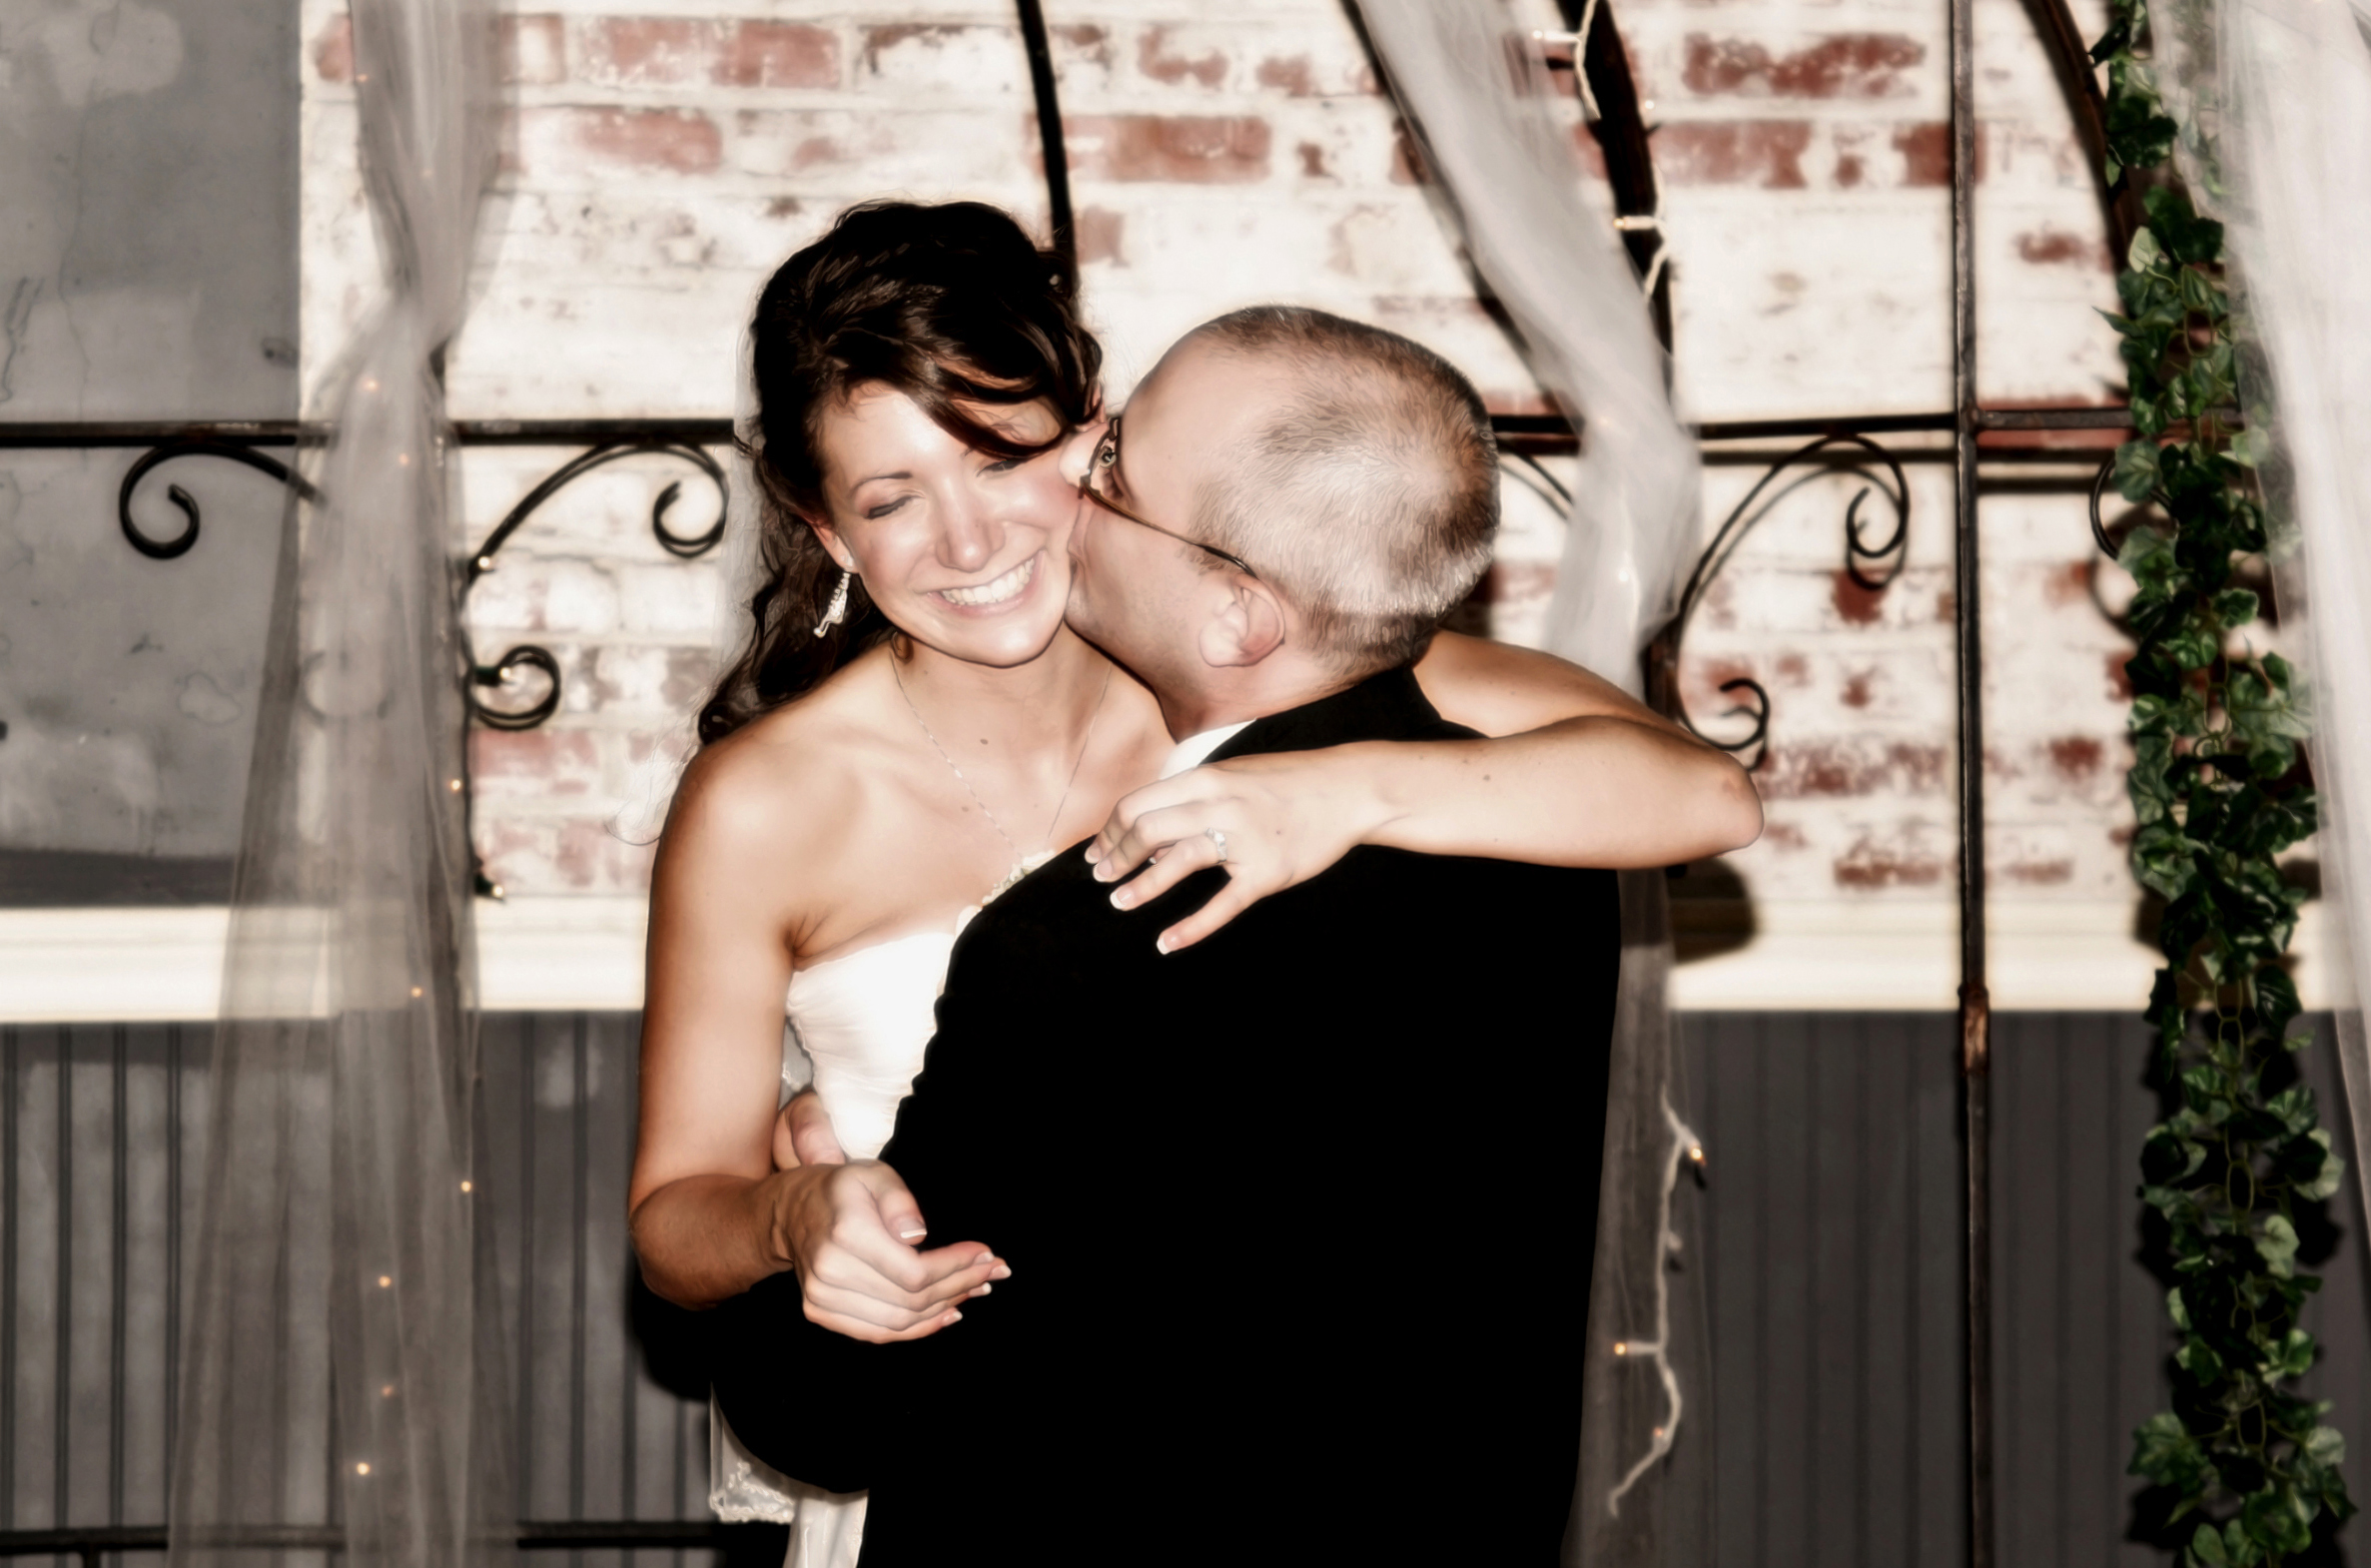 Asheville_20wedding_20photography_20formal_20portraits_20_10_.original.original